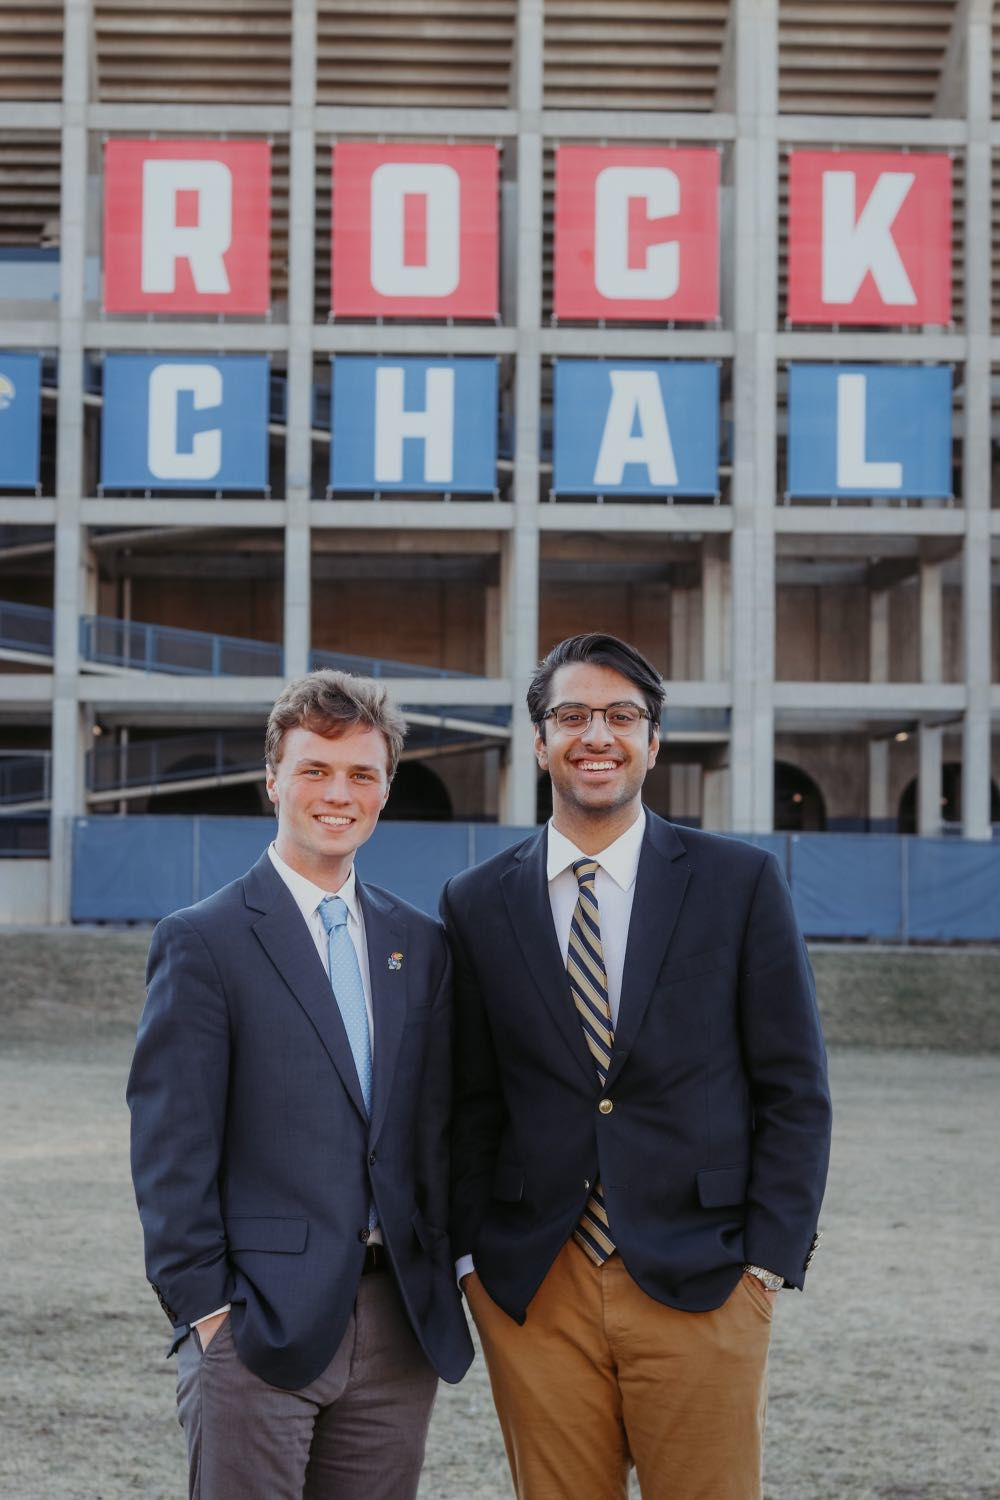 Grant Daily and Apramay Mishra stand in front of Memorial Stadium (copy)